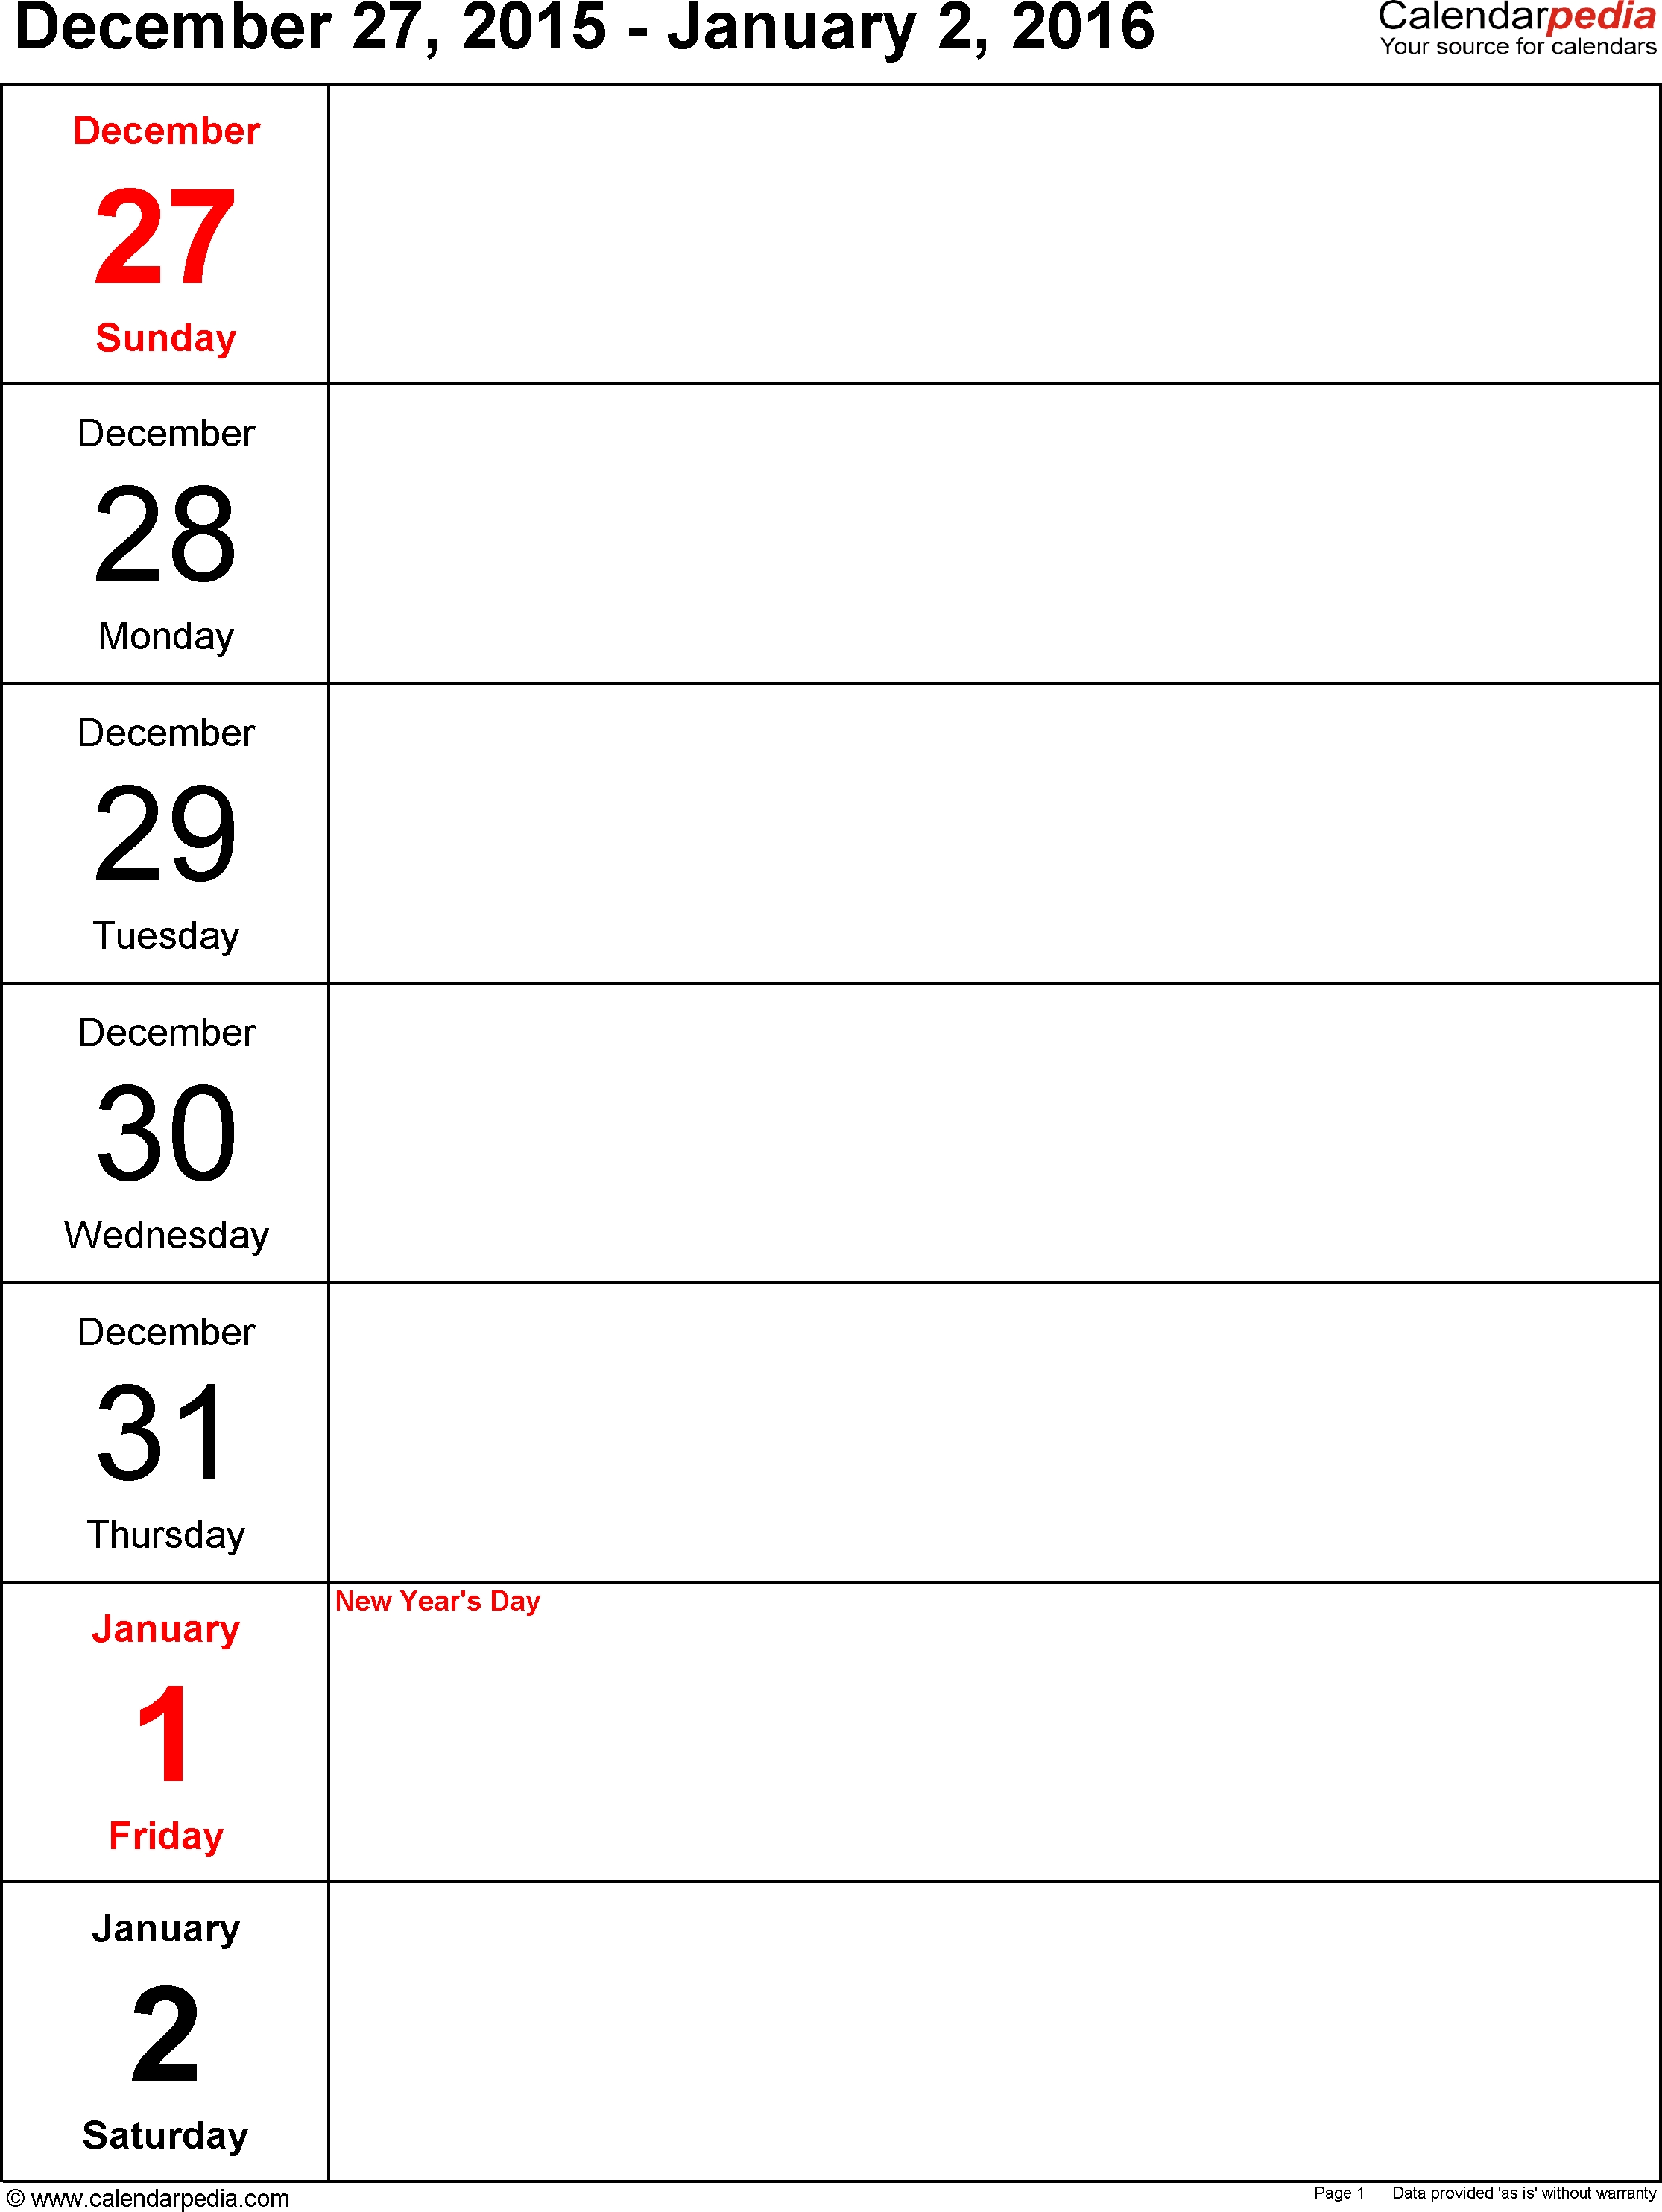 Free Weekly Planner Template Word Calendar For Printable Templates pertaining to Printable Calendar Weekly Planner Free